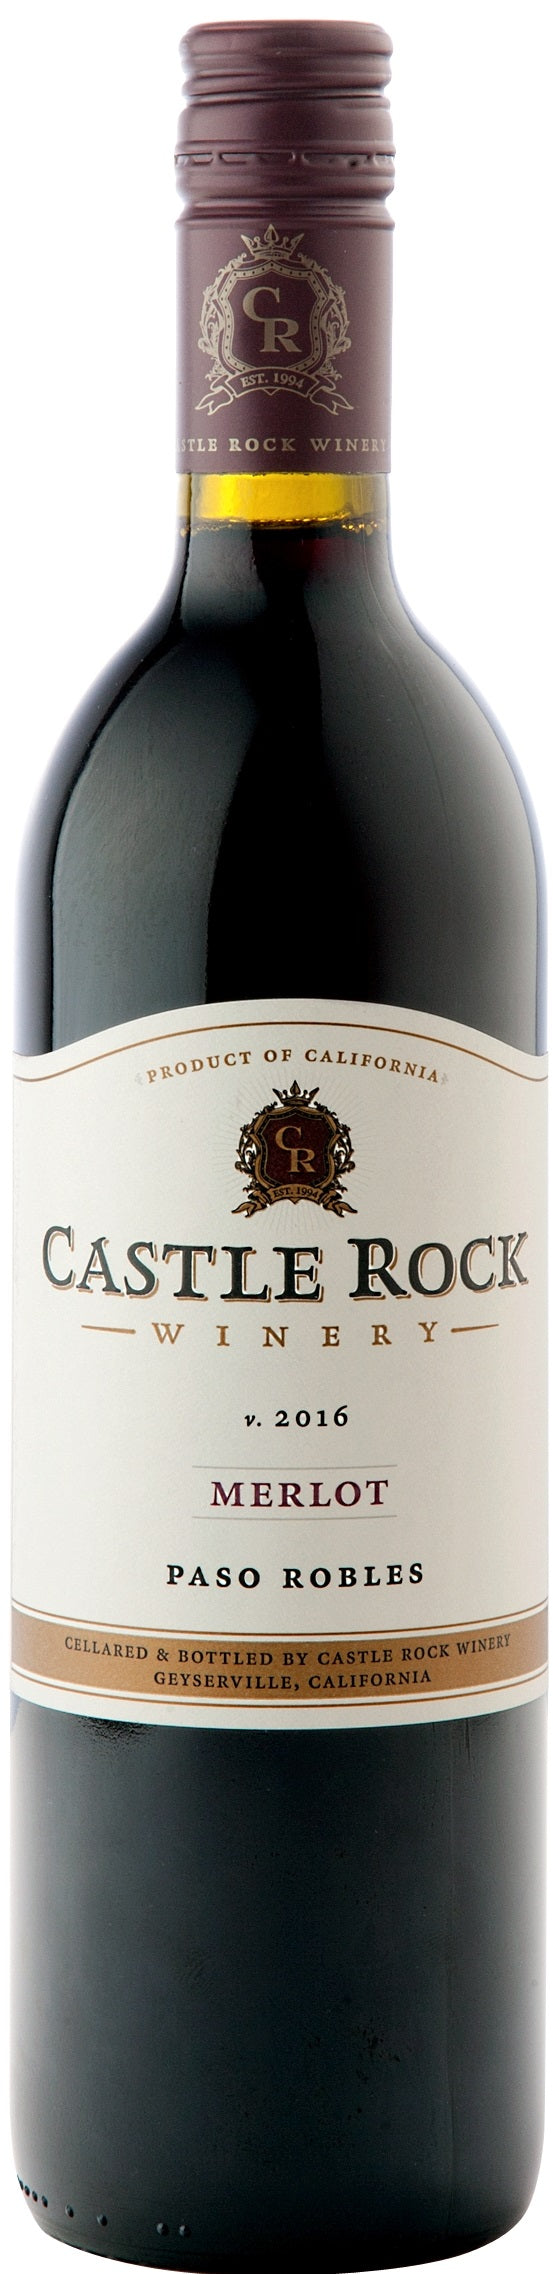 Castle Rock Merlot Paso Robles 2016